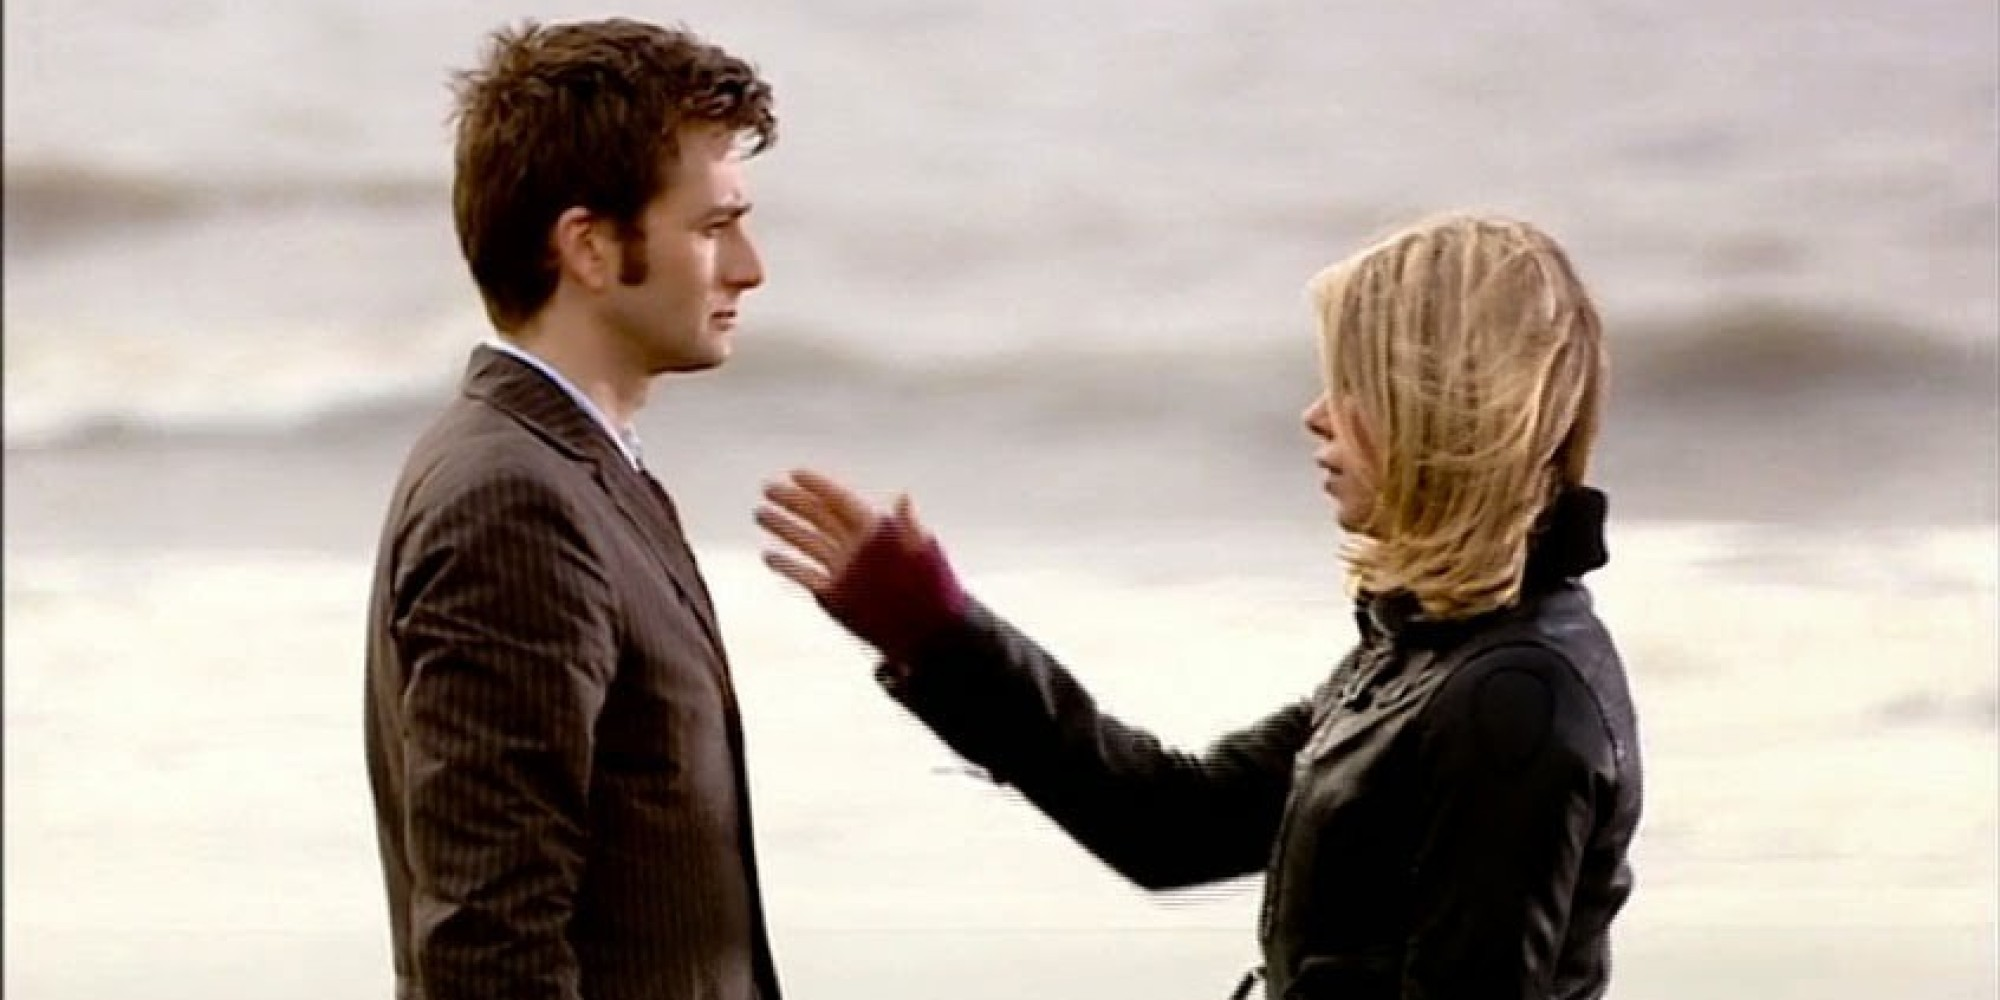 Image result for rose and the doctor final scene